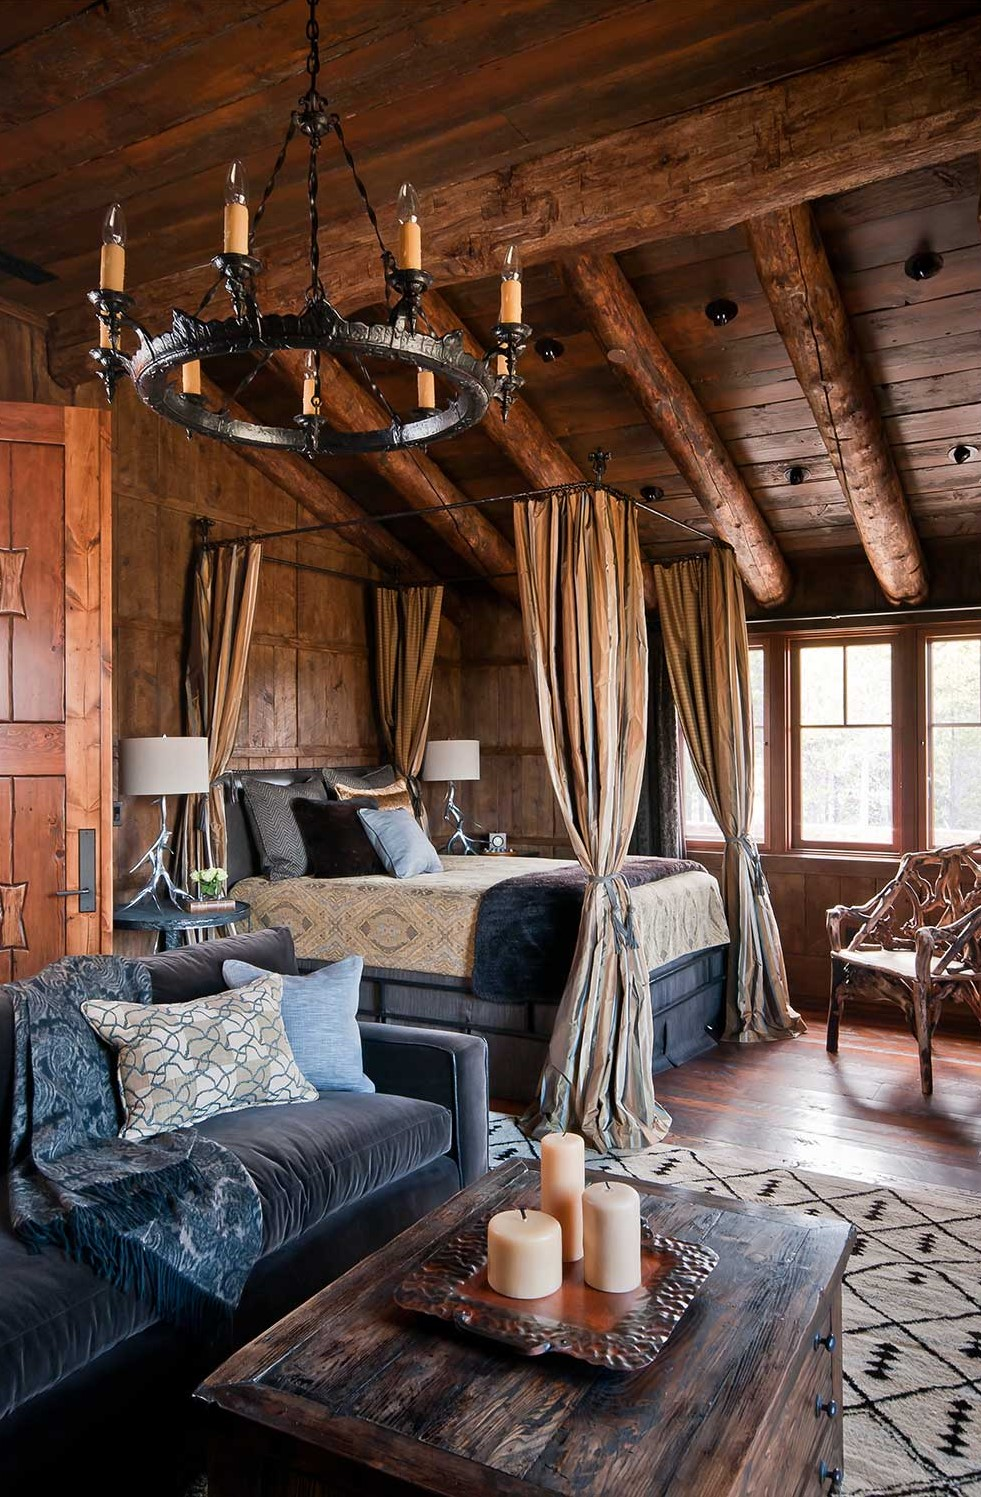 wood floor, wall and ceiling, bedroom design ideas